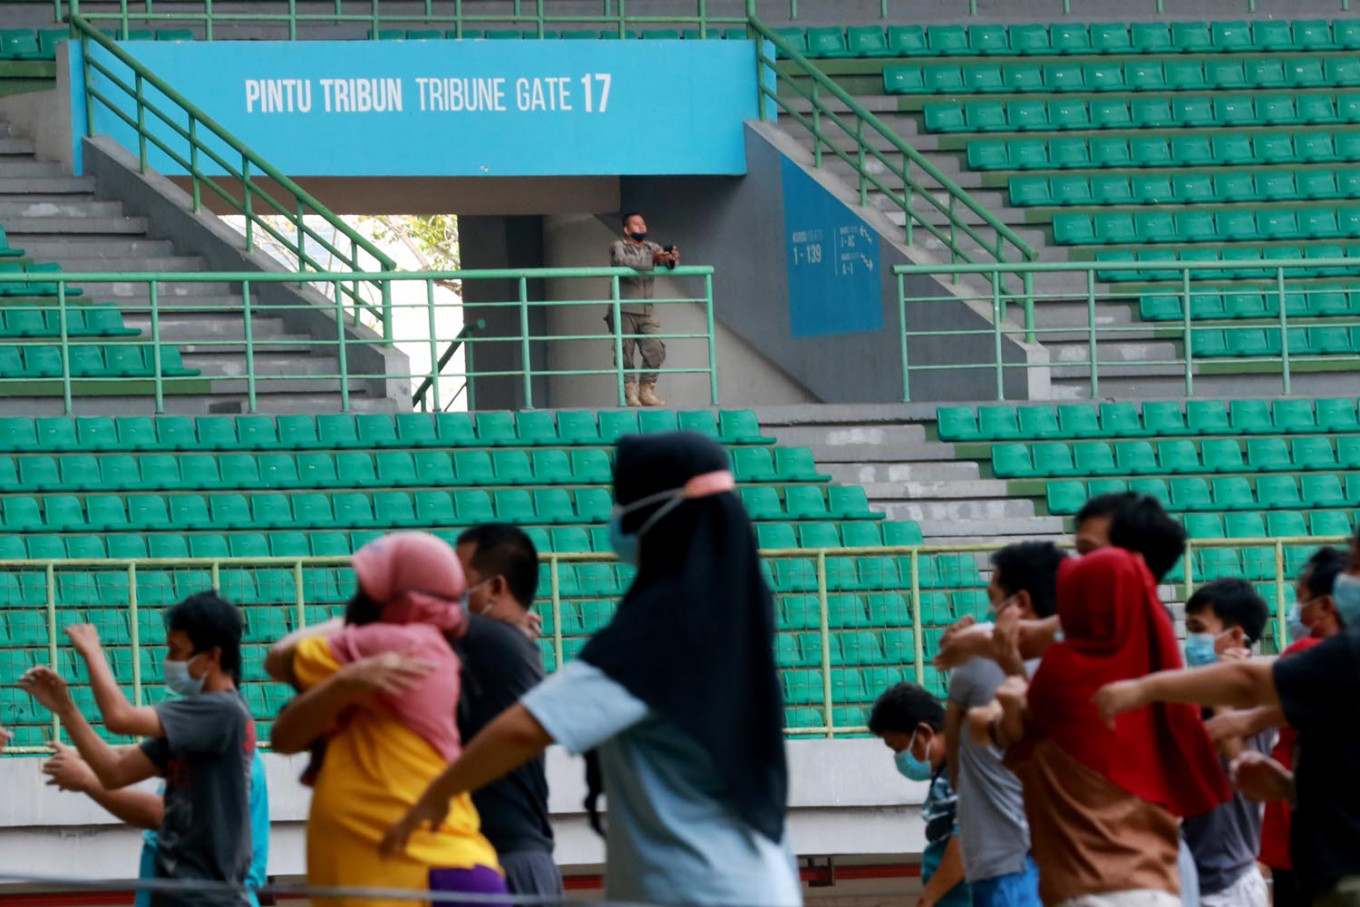 A Bekasi Public Order Agency (Satpol PP) officer watches over the morning exercises for asymptomatic COVID-19 patients isolating at the Patriot Candrabhaga Stadium isolation center in Bekasi, West Java, on October. 2. 2020. The stadium houses asymptomatic patients whose homes do not have sufficient space for self-isolation. JP/Dhoni Setiawan